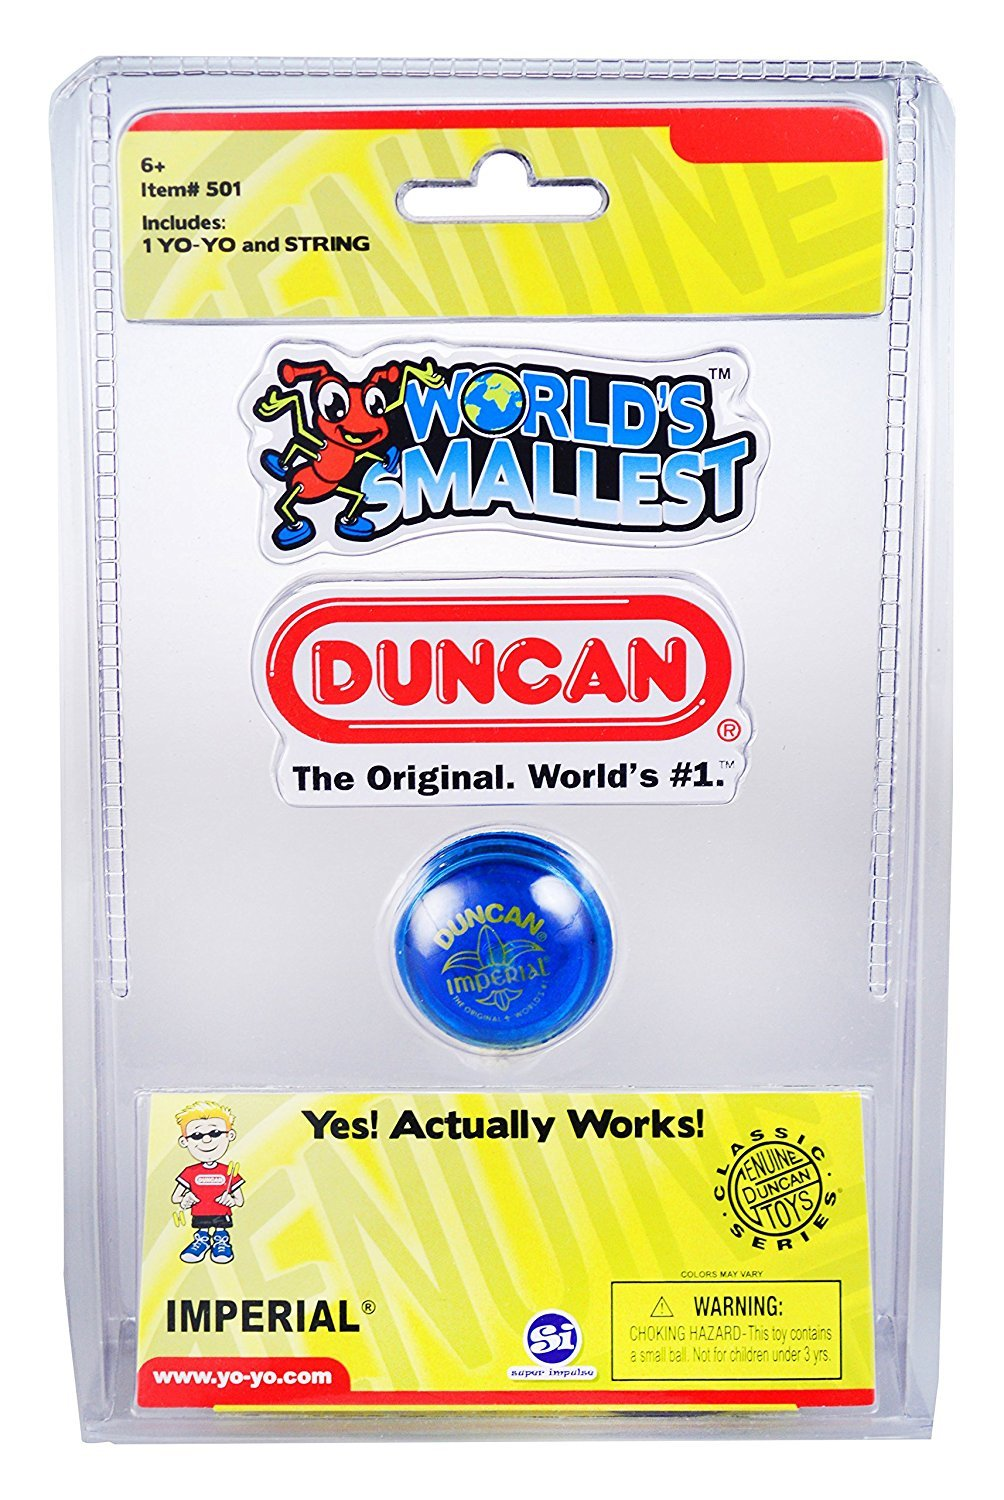 Worlds Smallest - Duncan Yoyo image